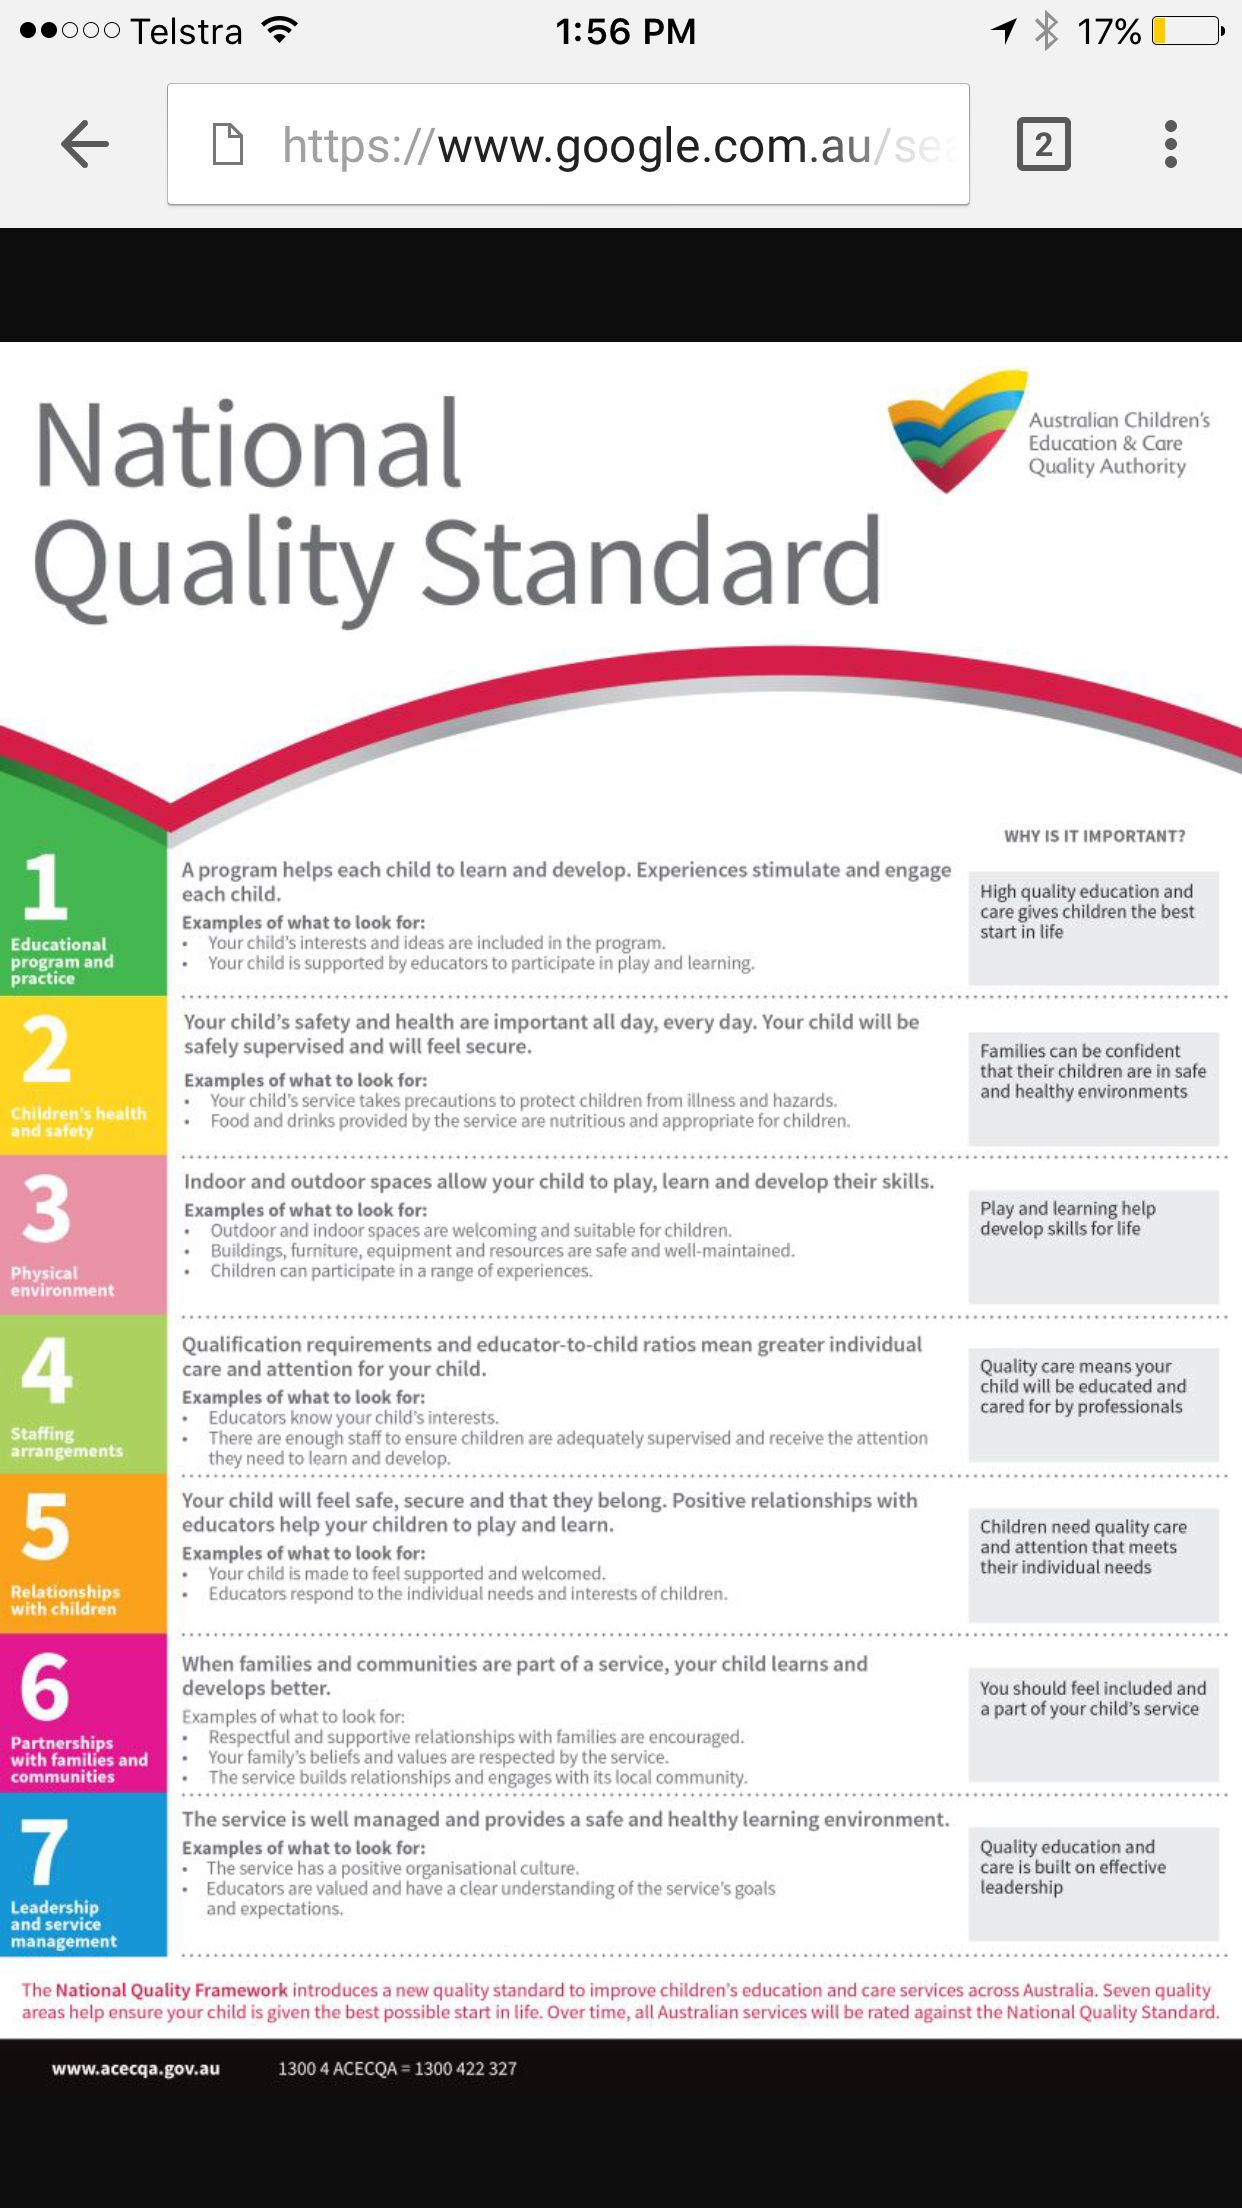 National Quality Standard - 7 quality areas | Pinterest- Frameworks